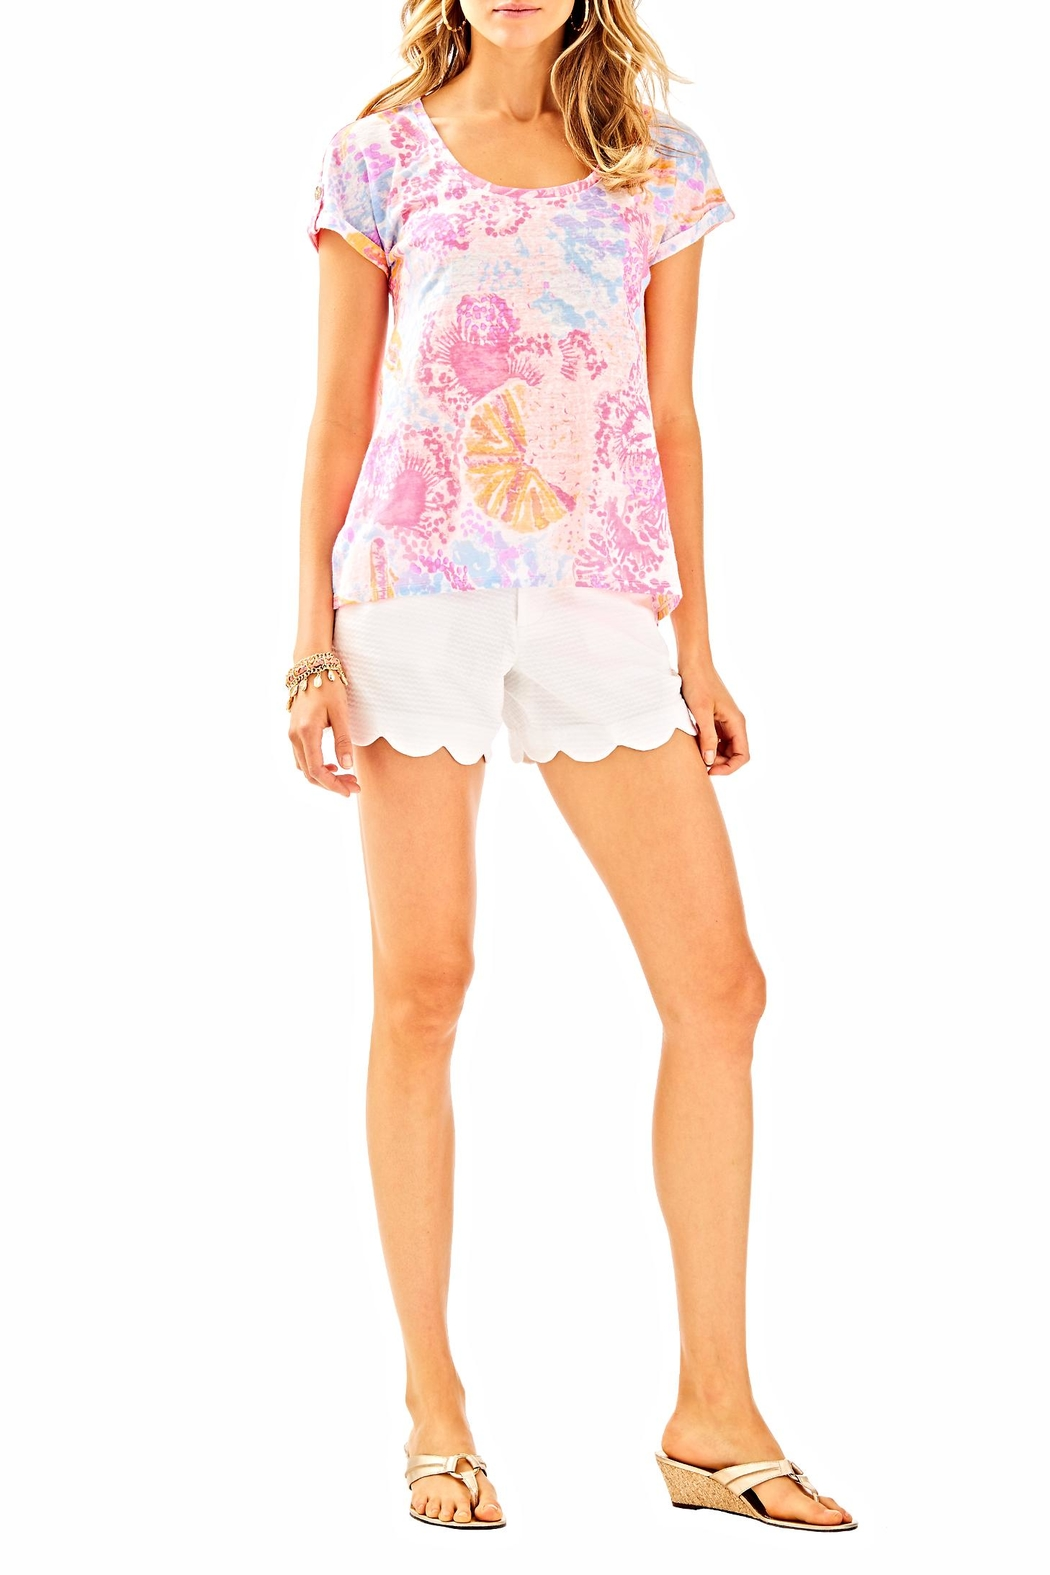 Lilly Pulitzer Inara Linen Top - Side Cropped Image